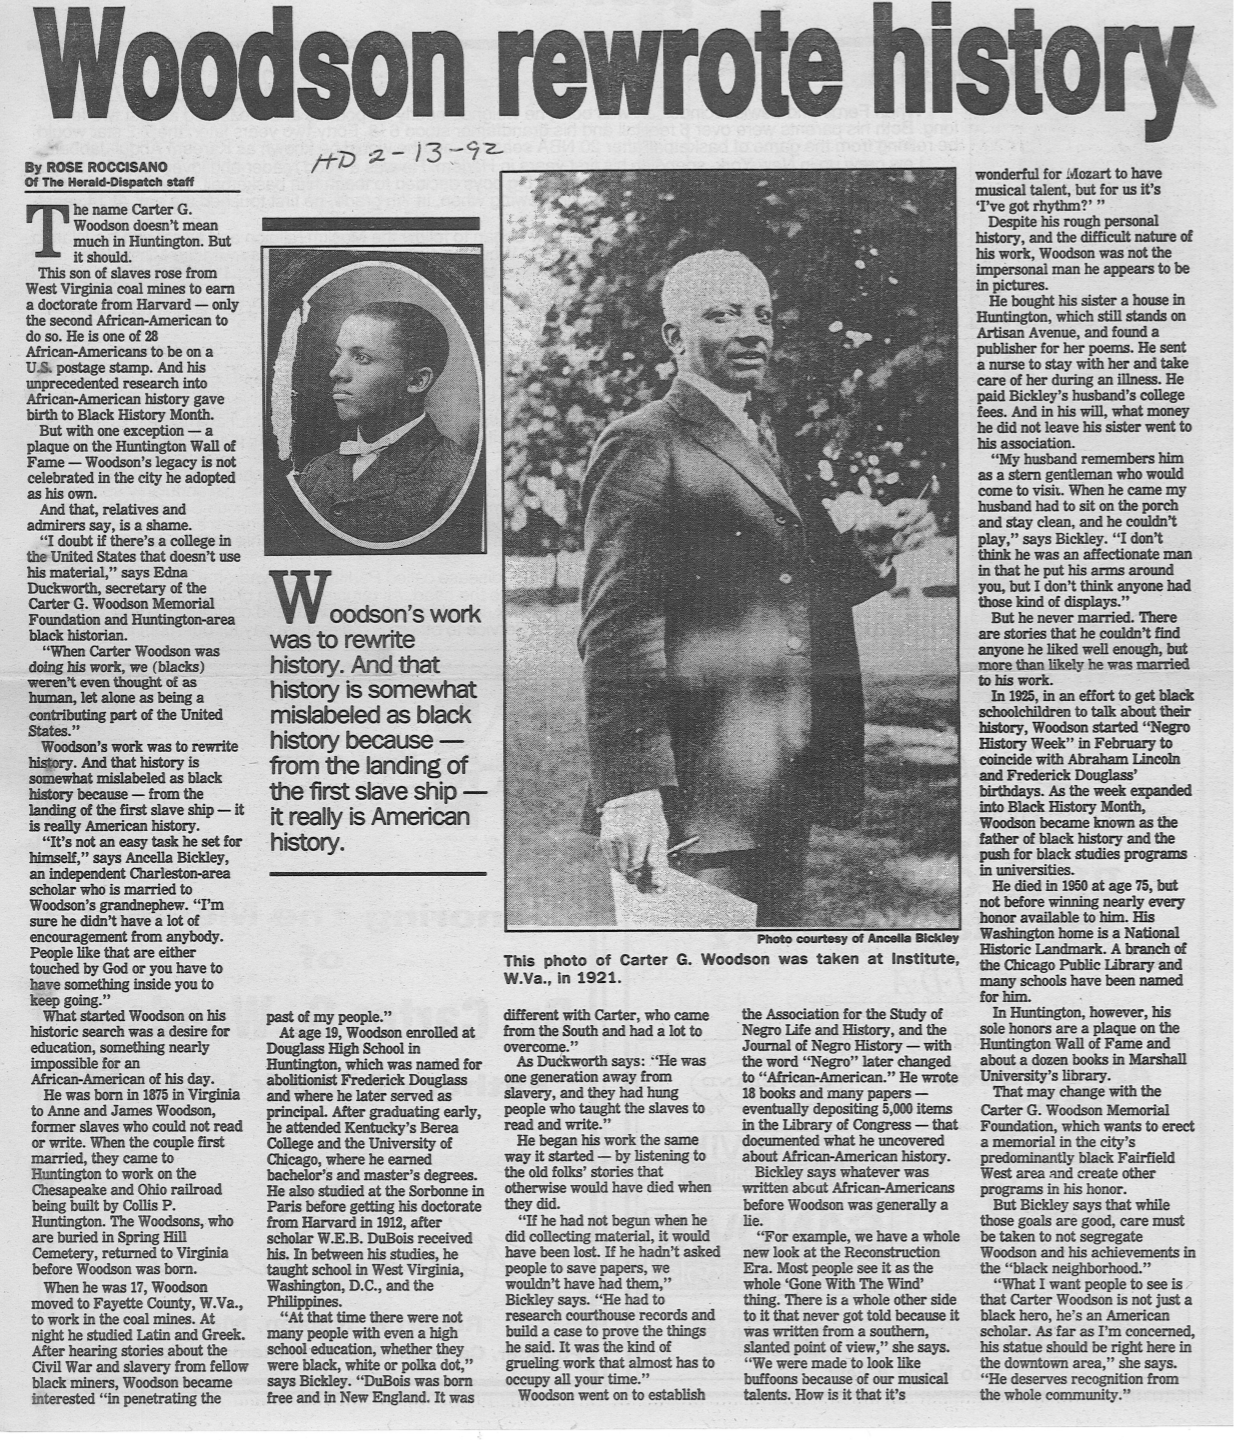 "Roccisano, Rose. ""Woodson Rewrote History."" The Herald Dispatch 13 Feb. 1992. Print.